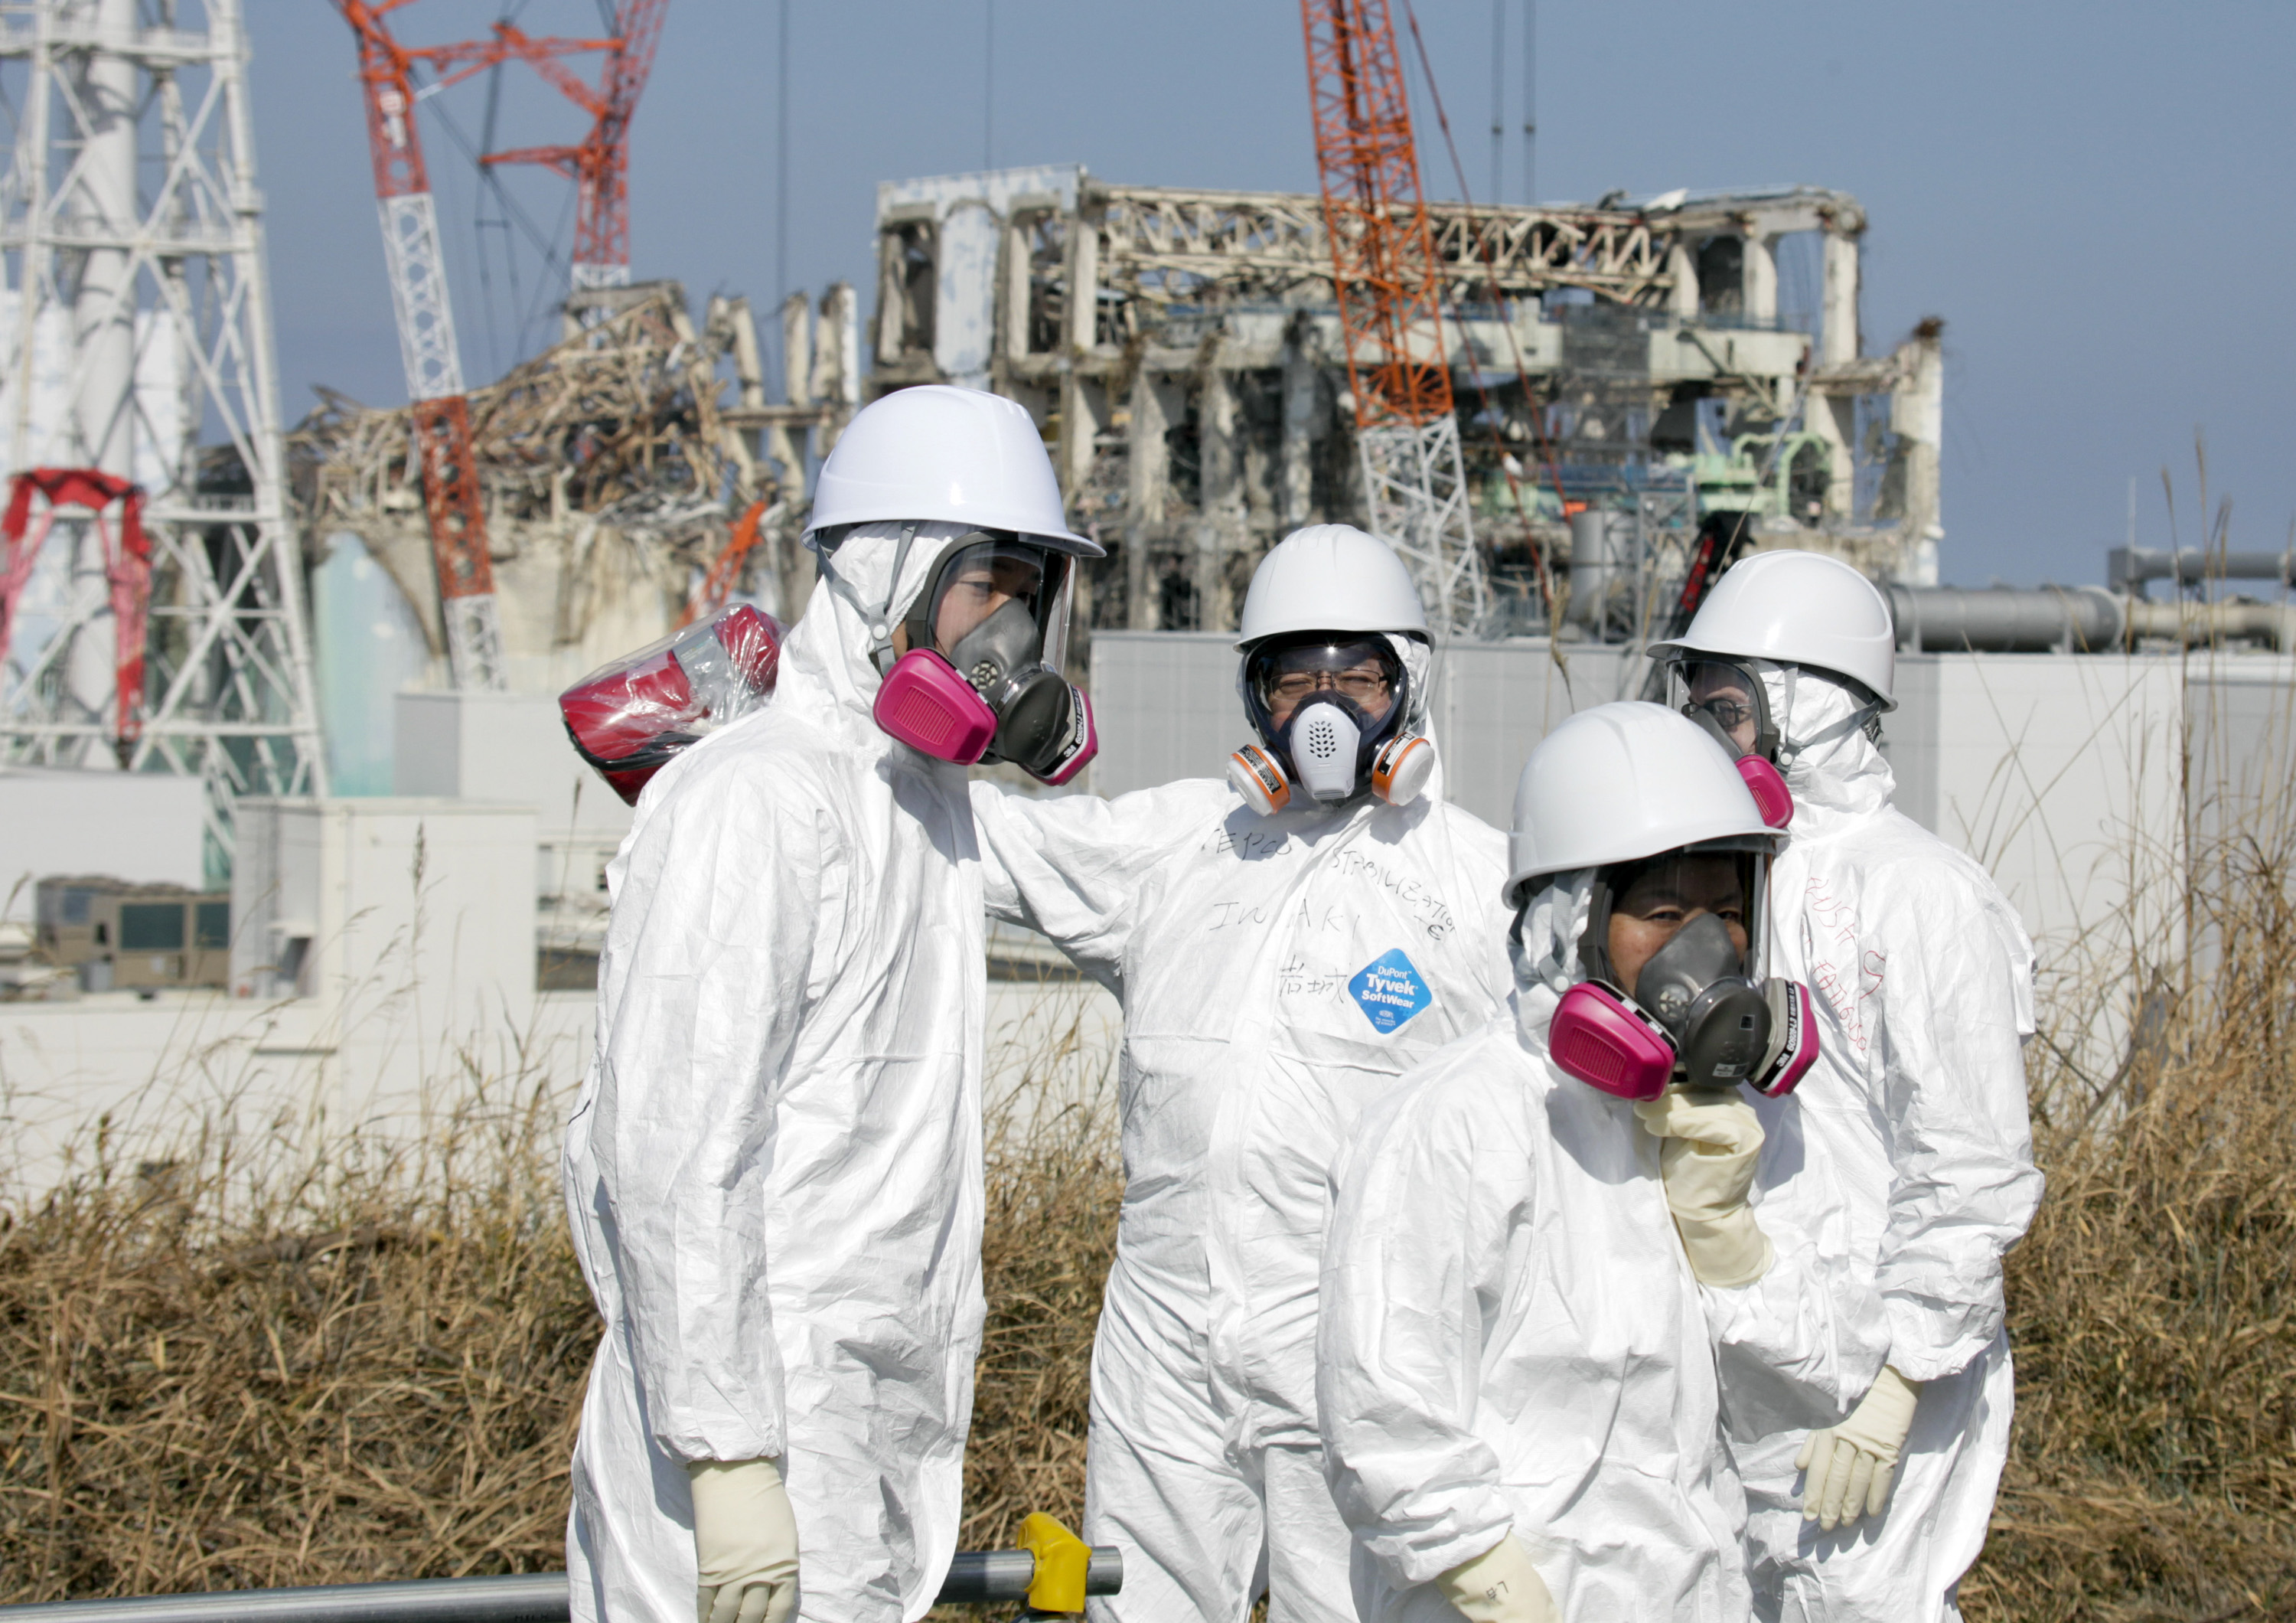 Member of the media, escorted by TEPCO employees, wearing protective suits and masks, look at the Unit 3 and Unit 4 reactor buildings of Tokyo Electric Power Co. (TEPCO)'s tsunami-crippled Fukushima Daiichi nuclear power station in Okuma, Fukushima prefecture, northeastern Japan, Tuesday, Feb. 28, 2012. (AP Photo/Kimimasa Mayama, Pool)